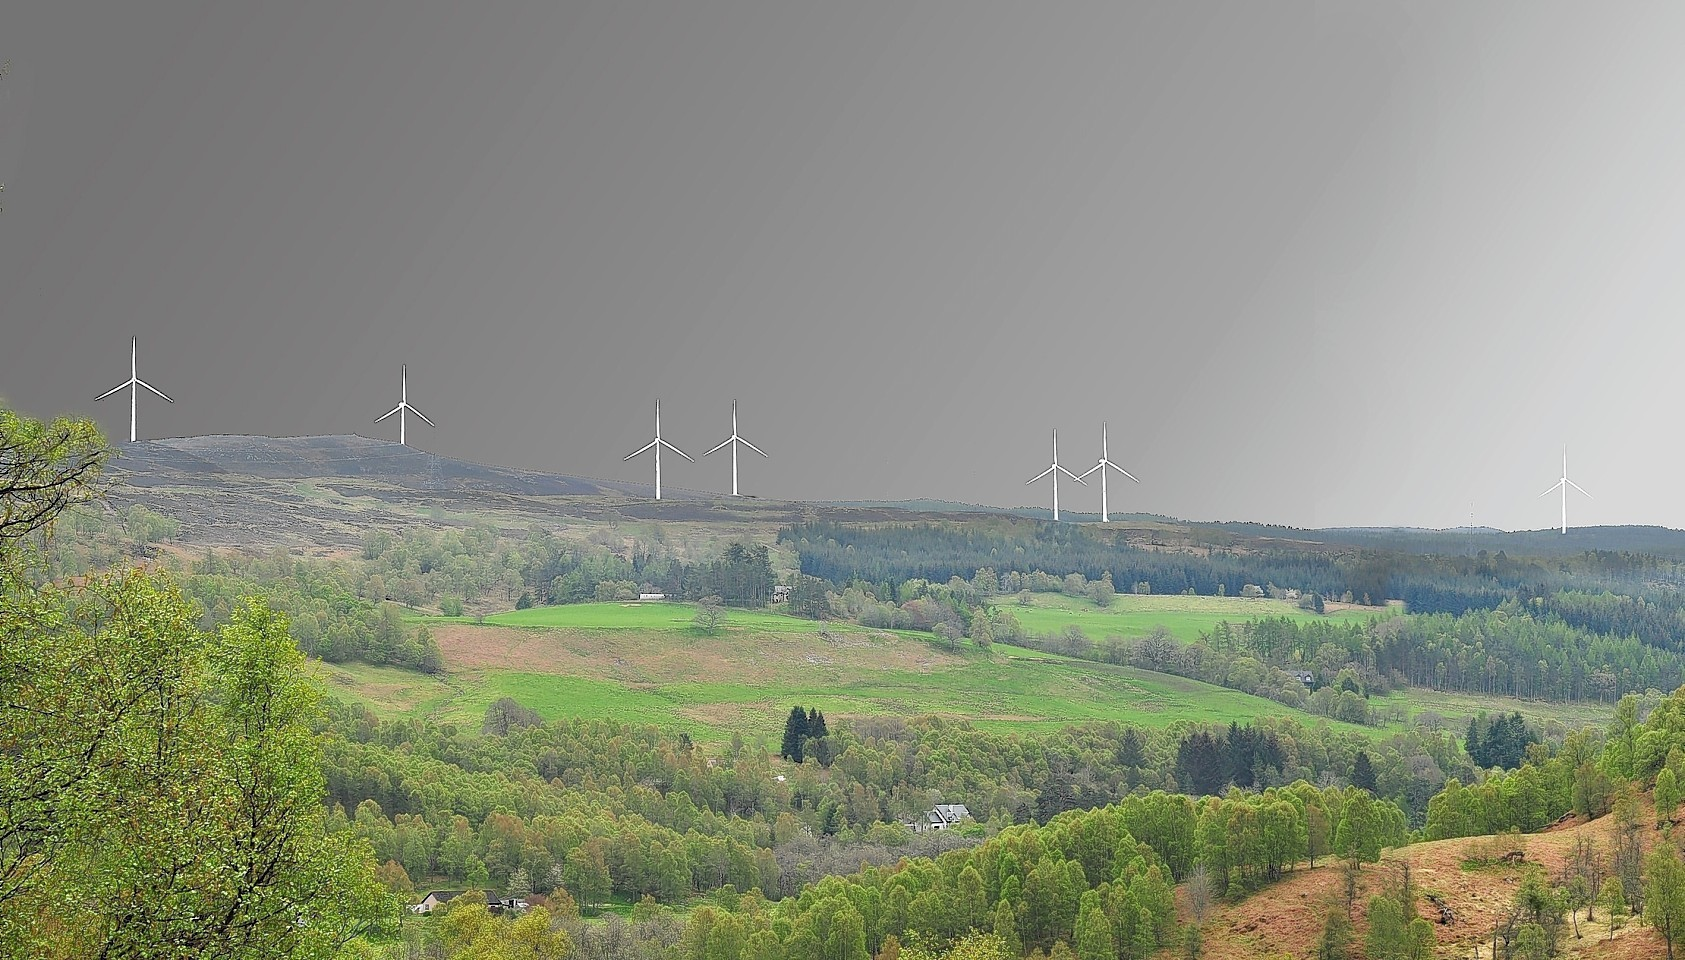 Artist impression of the proposed windfarm produced by anti windfarm group 'Glen Affric Friends Say No'